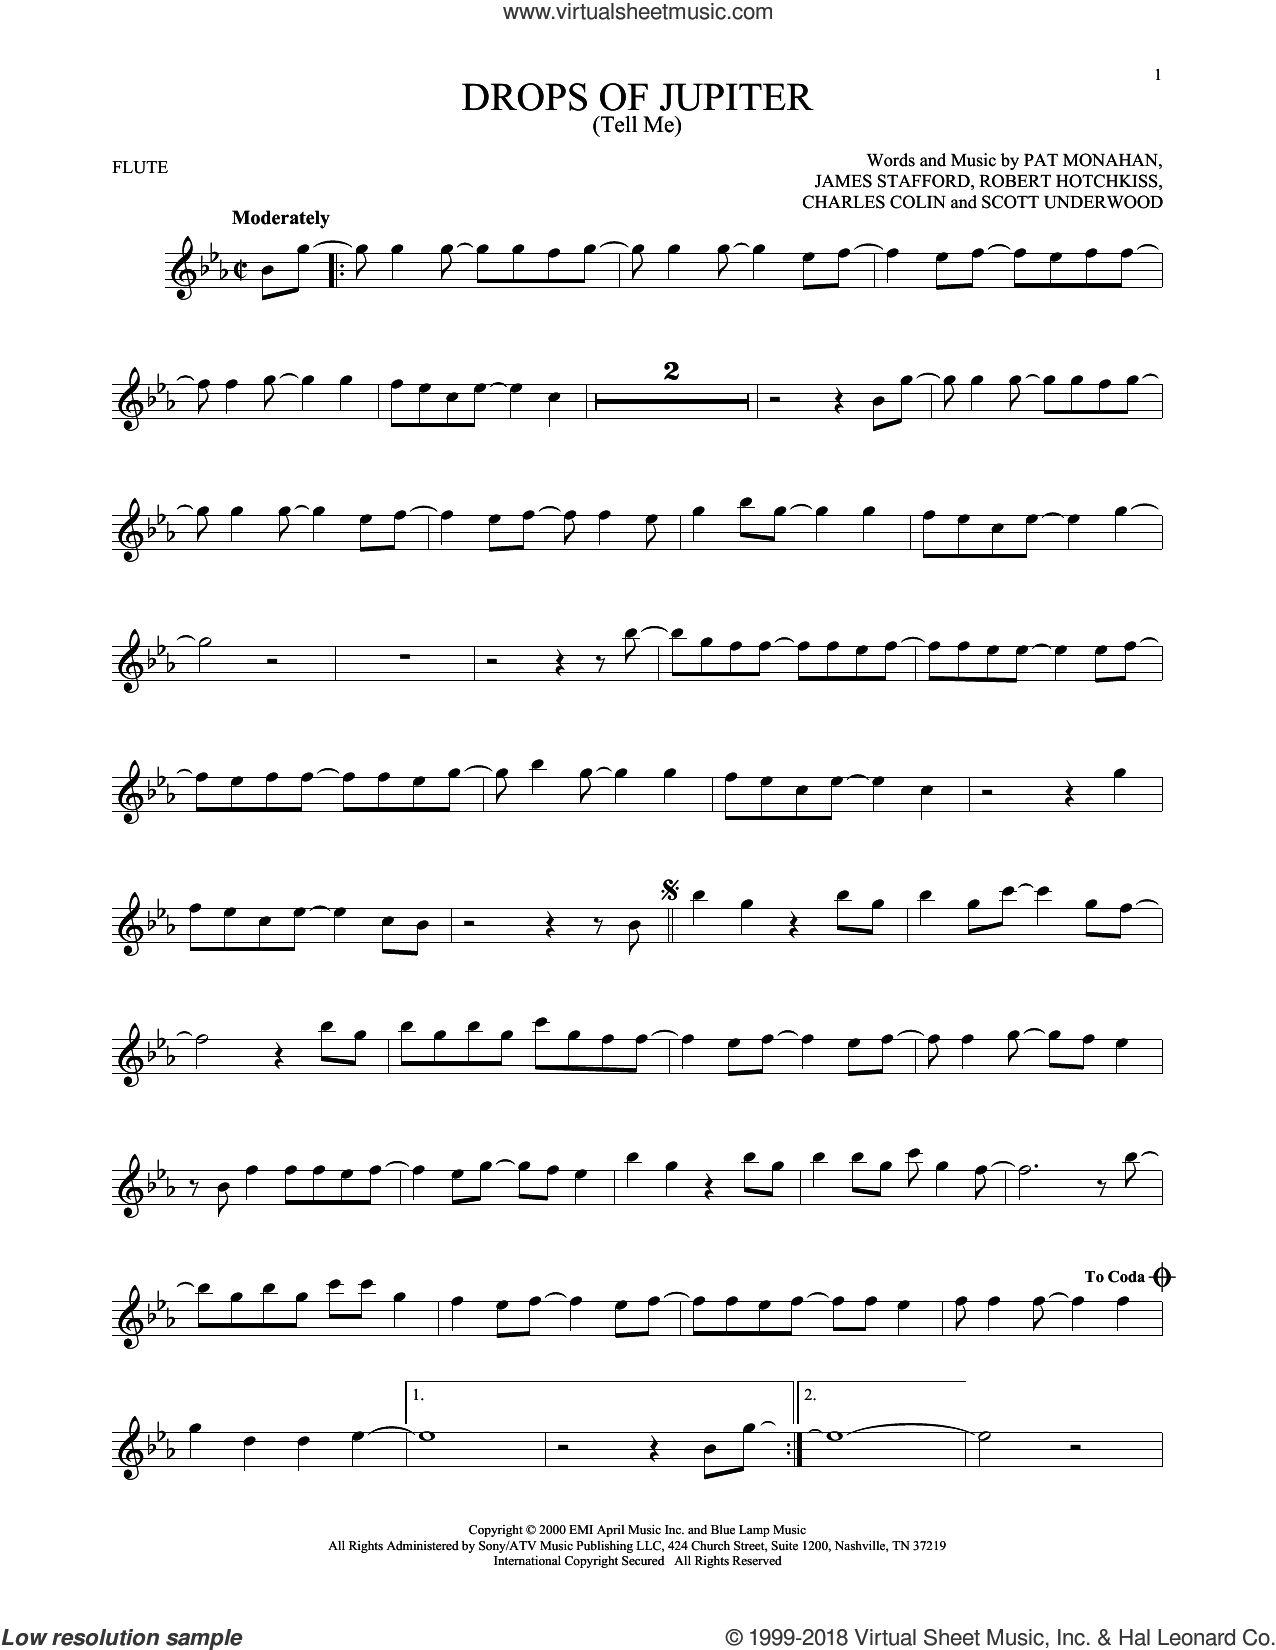 Drops Of Jupiter (Tell Me) sheet music for flute solo by Train, Charles Colin, James Stafford, Pat Monahan, Robert Hotchkiss and Scott Underwood, intermediate skill level